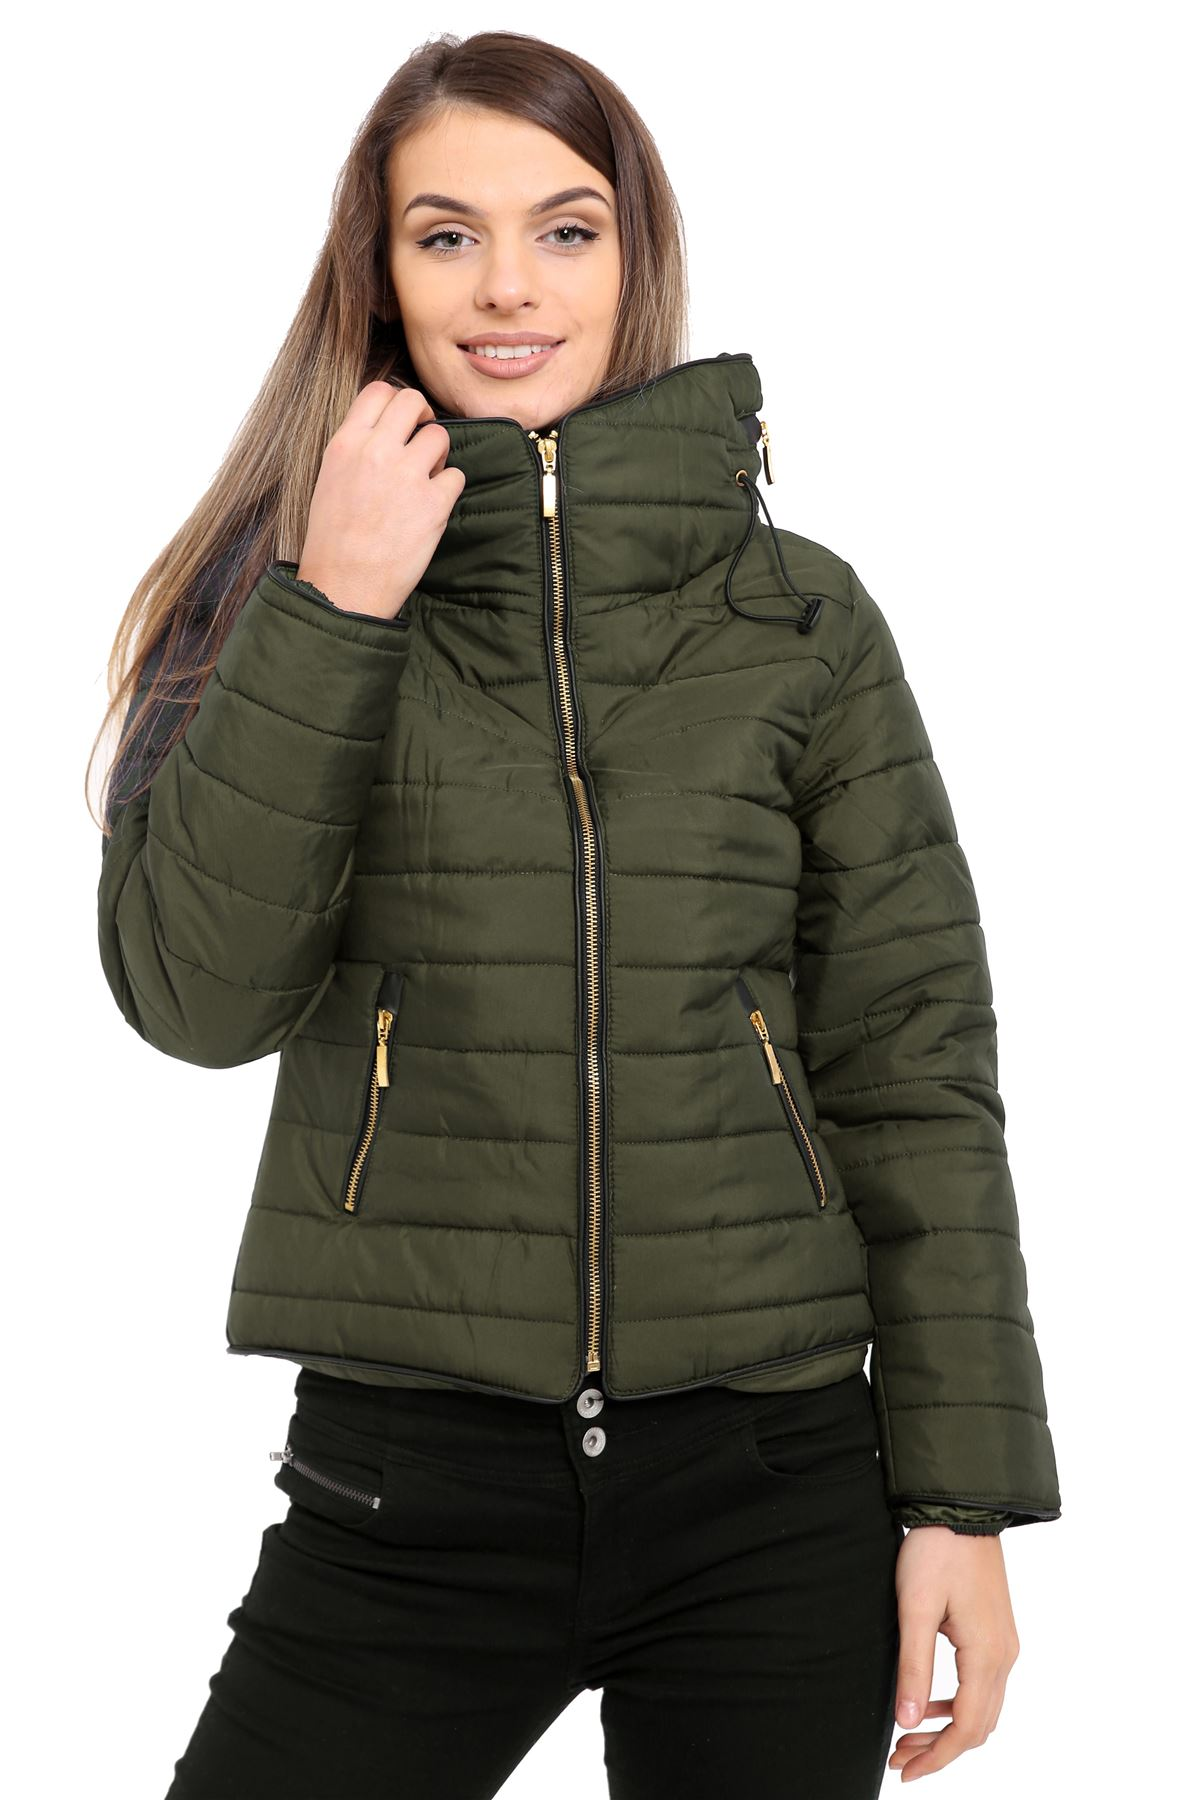 An icon of outerwear, puffer jackets are the must-have jacket staple. With a varied colour range, unique cropped cuts and sleeveless jackets, this edit has it all.